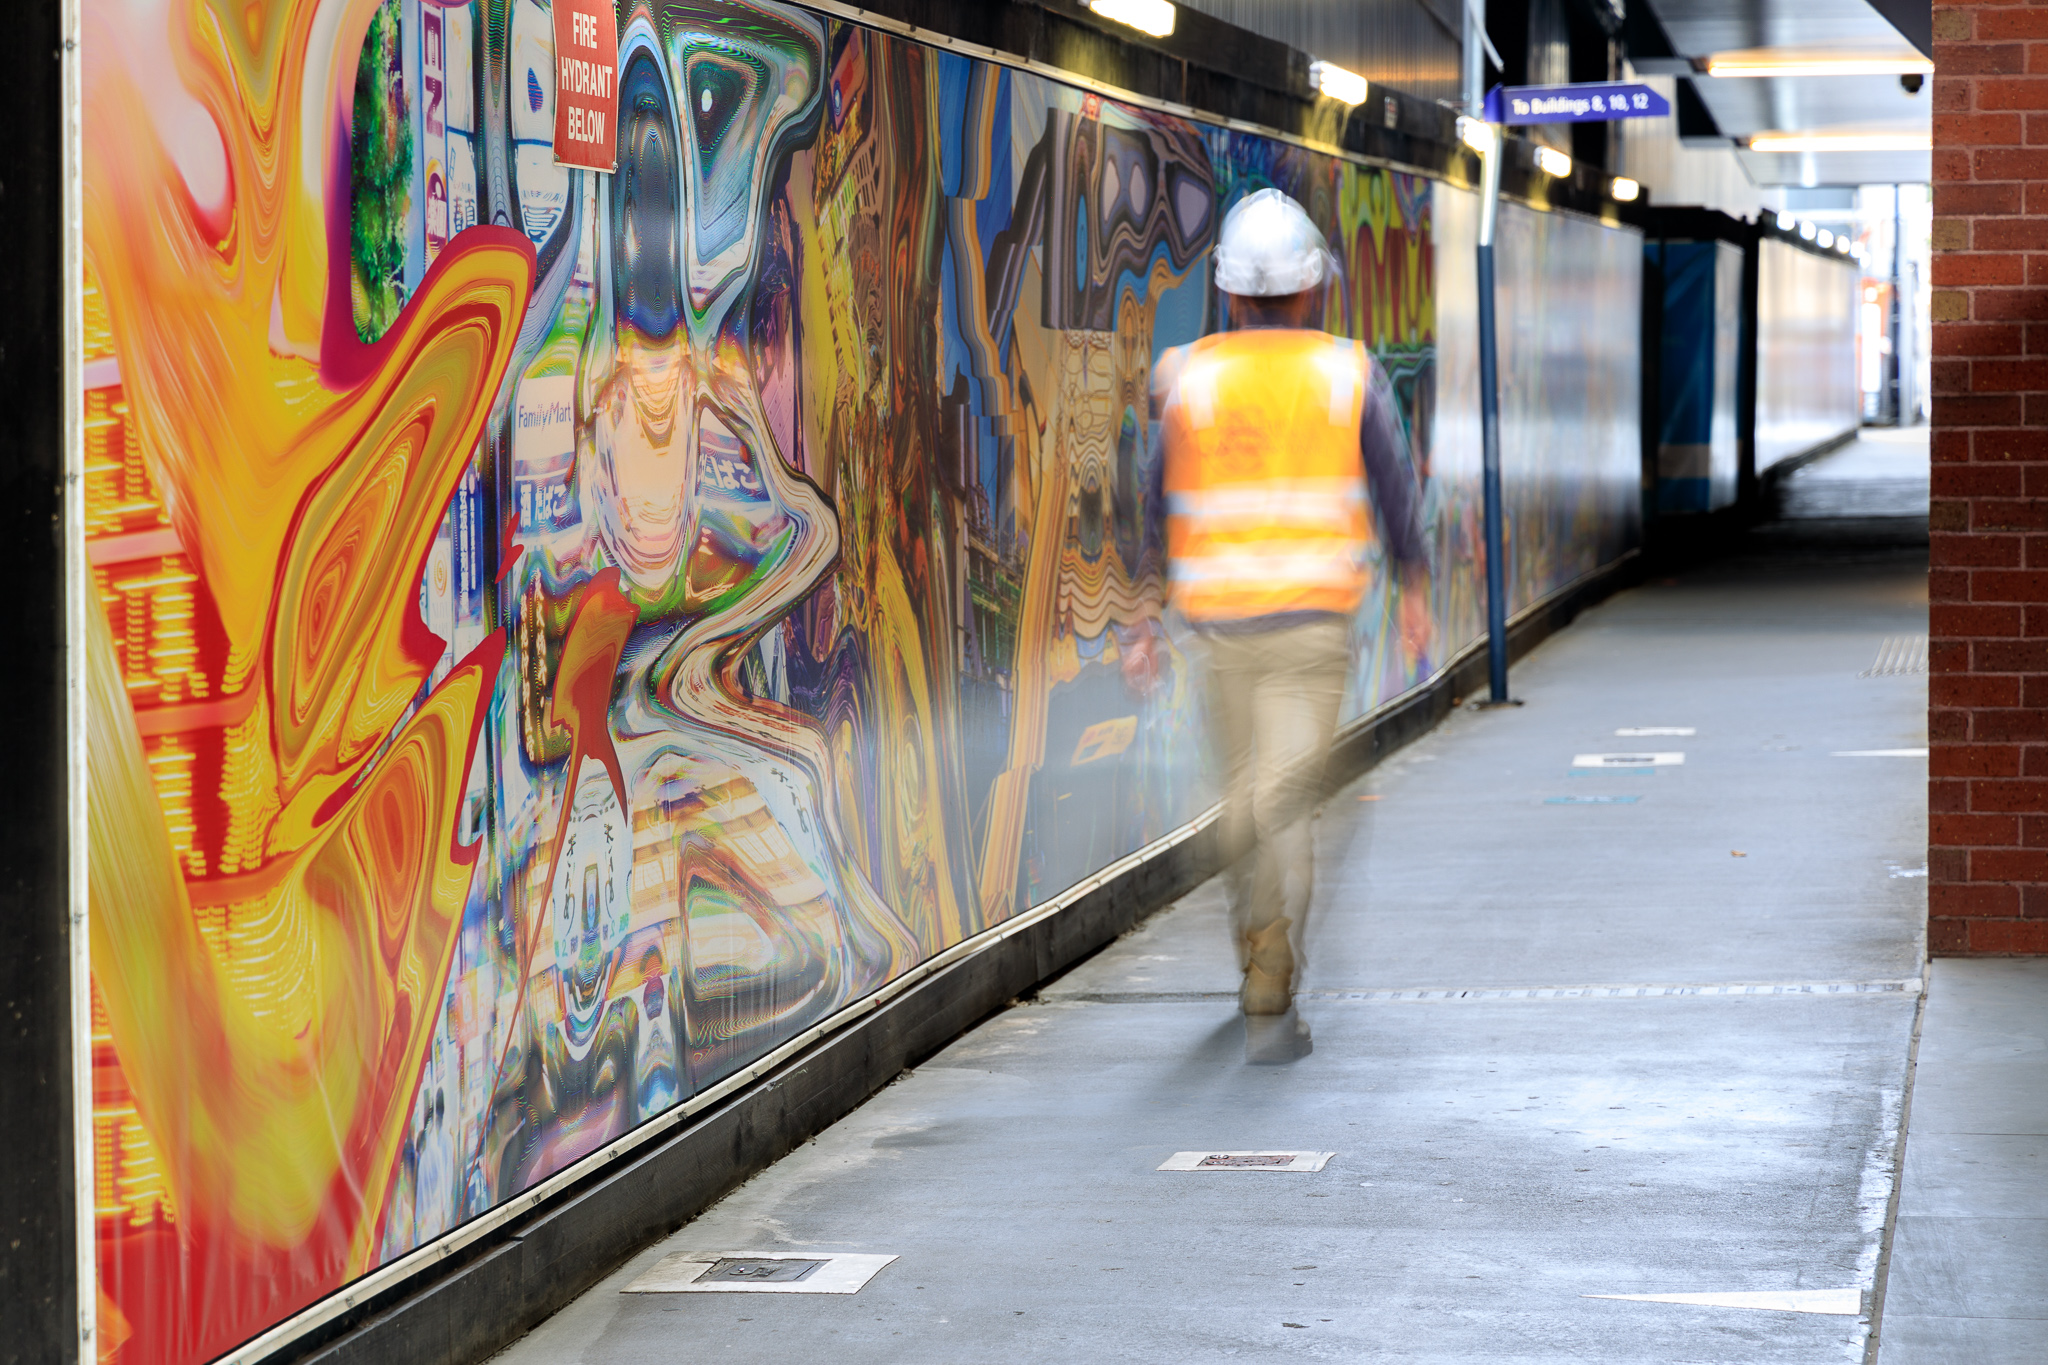 A person in a hard hat and hi-vis walks past a colourful and distorted image on a wall